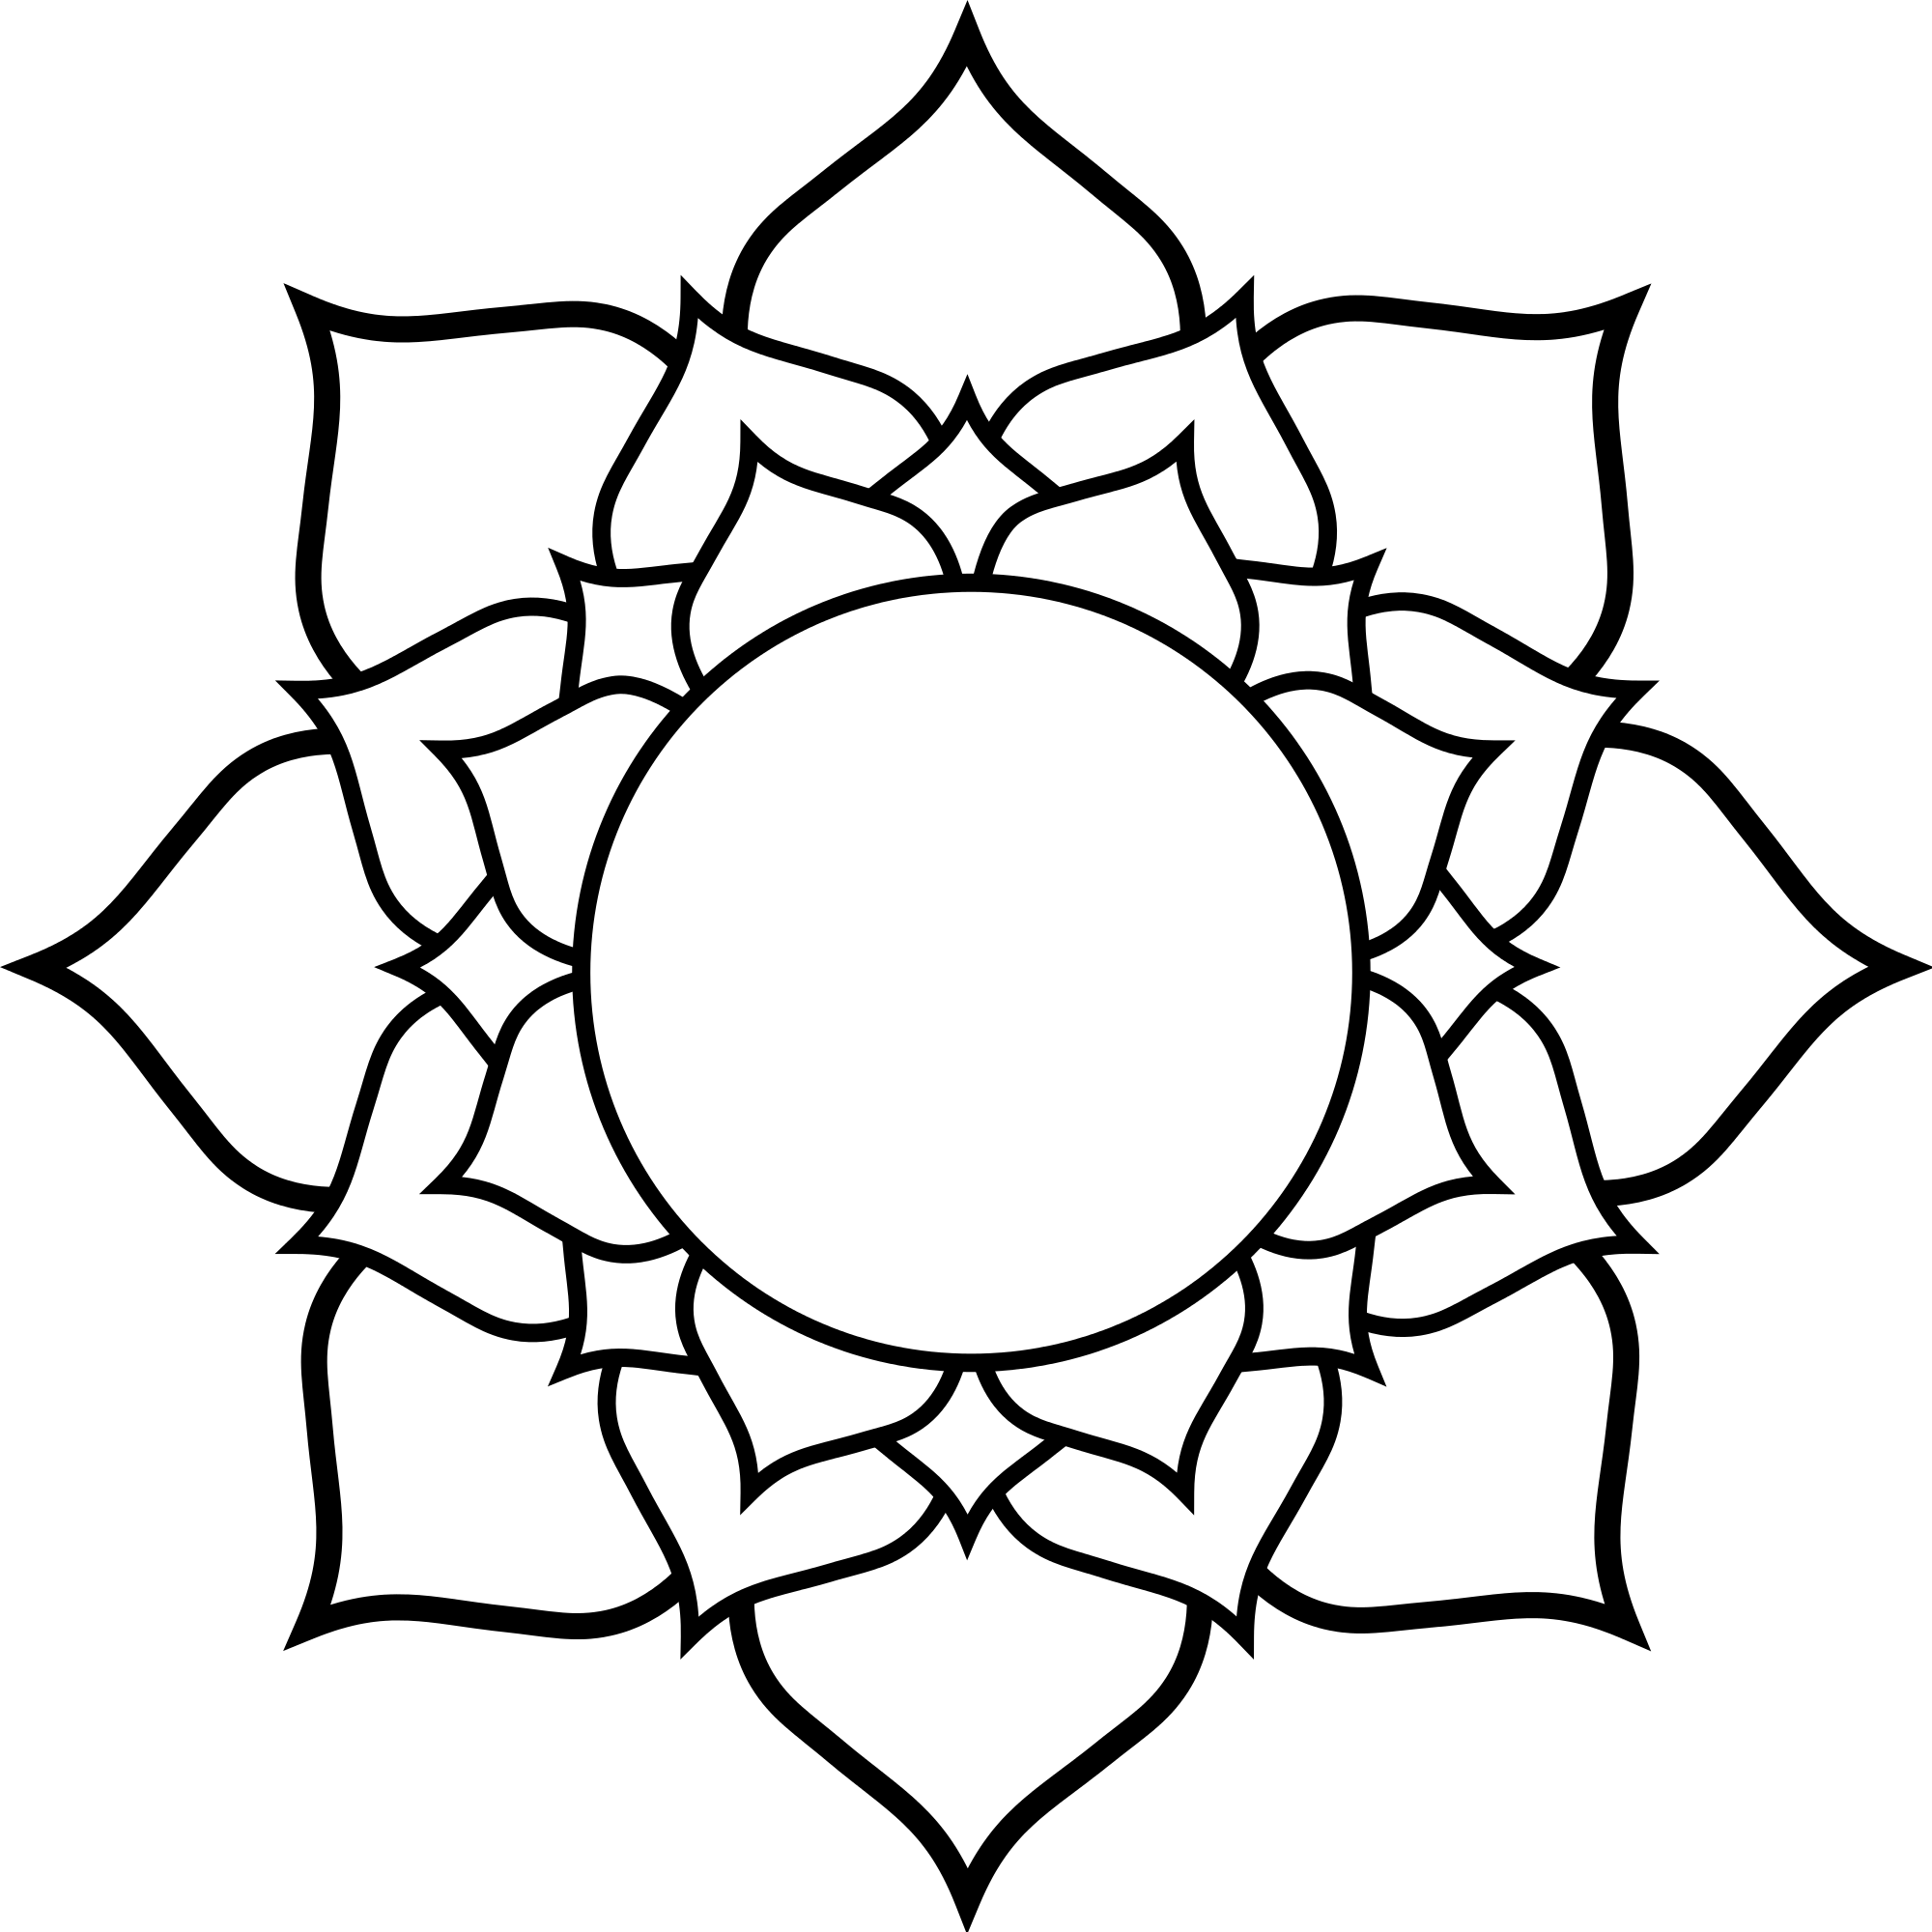 png black and white Lotus svg. File wikimedia commons open